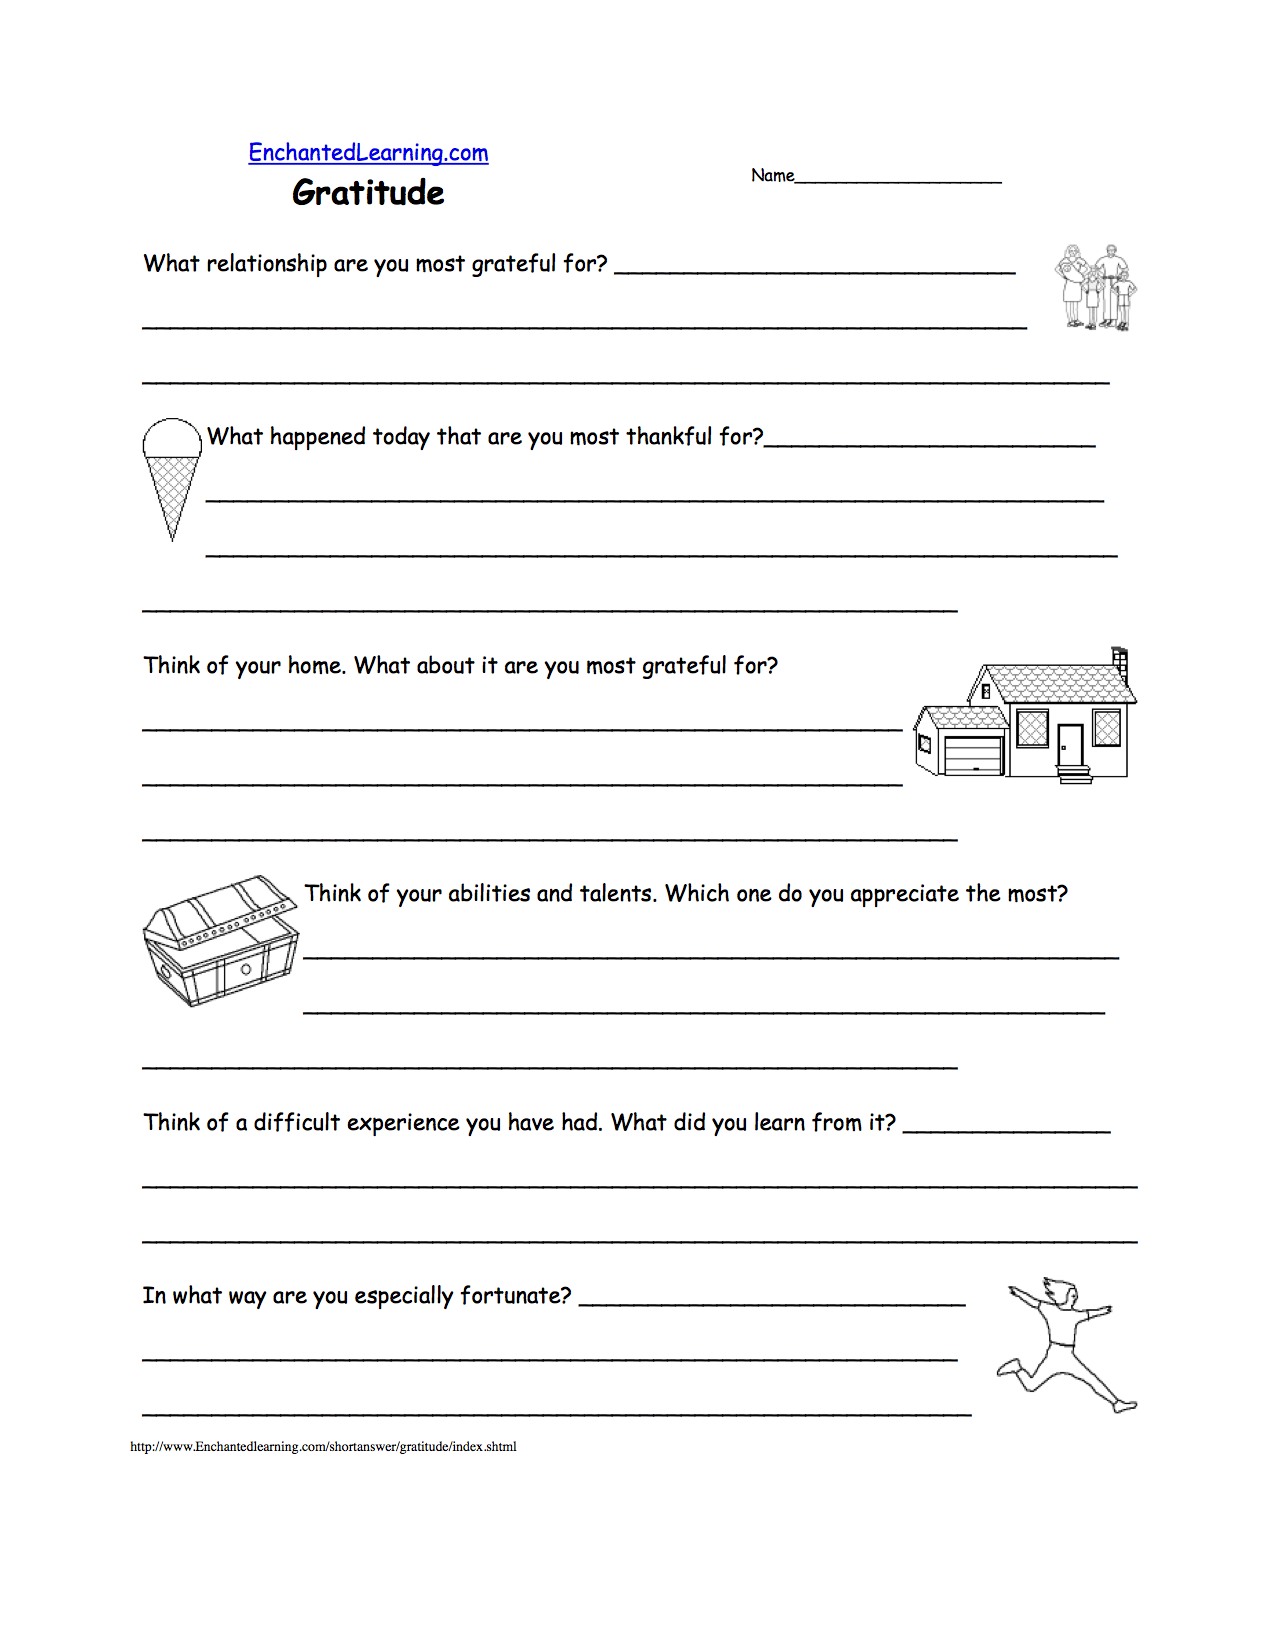 Worksheet Feelings And Emotions Worksheets Pdf feelings and emotions at enchantedlearning com thanksgiving